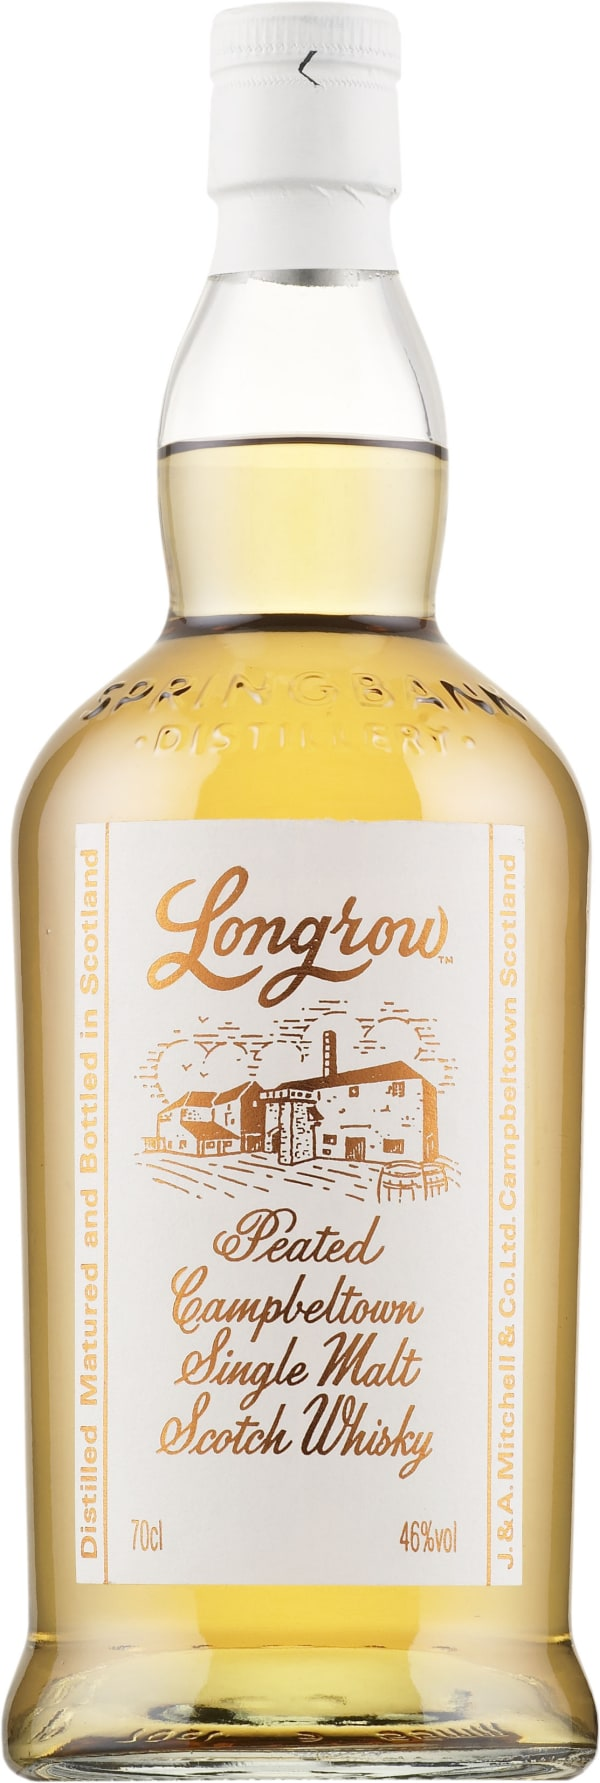 Longrow Peated Single Malt